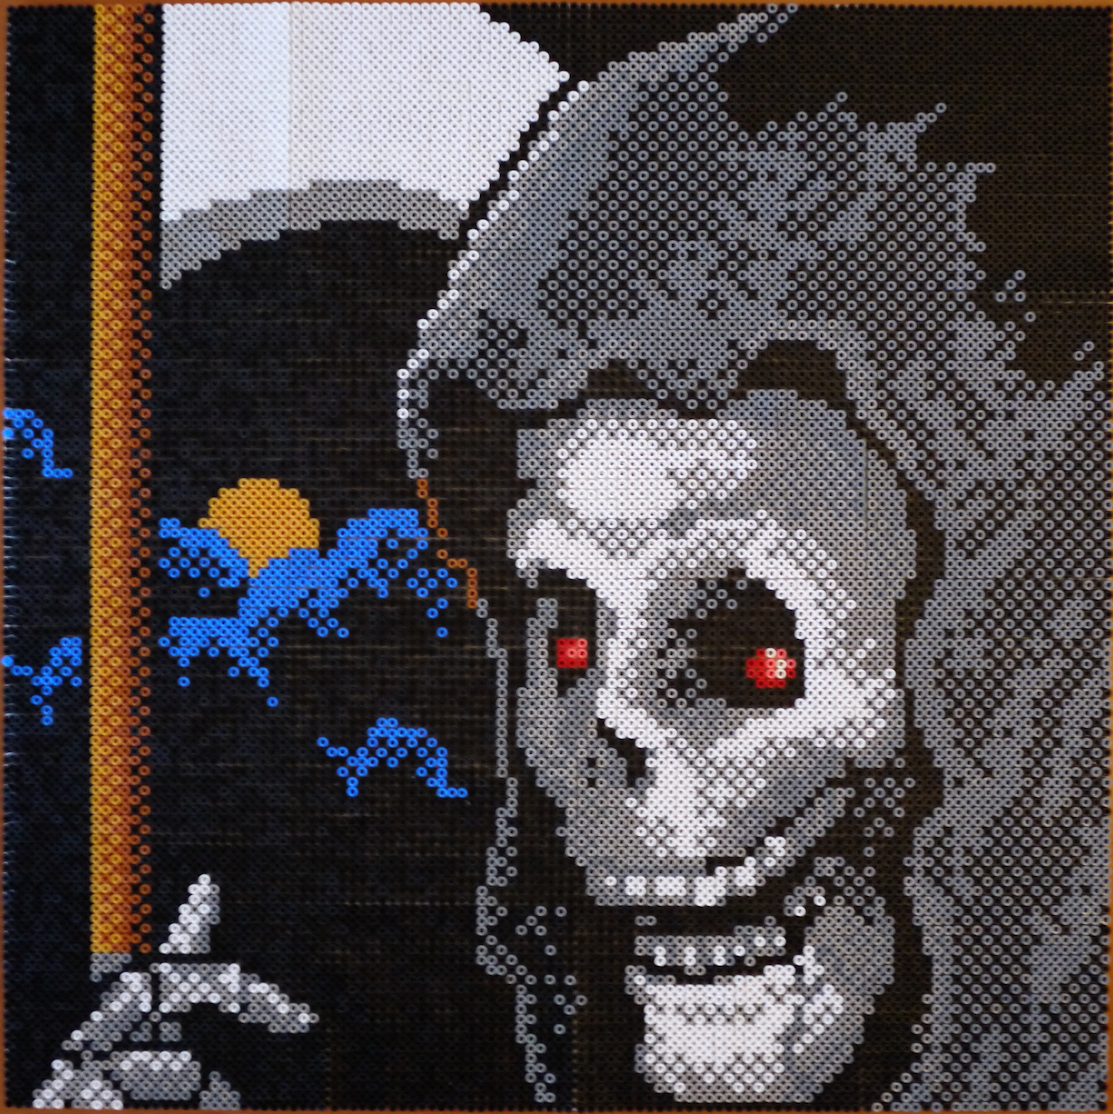 """IT'S A SAD THING THAT YOUR ADVENTURES HAVE ENDED HERE!! Unironed """"Shadowgate"""" Grim Reaper made with 12544 Hama and PhotoPearls beads - Imgur"""